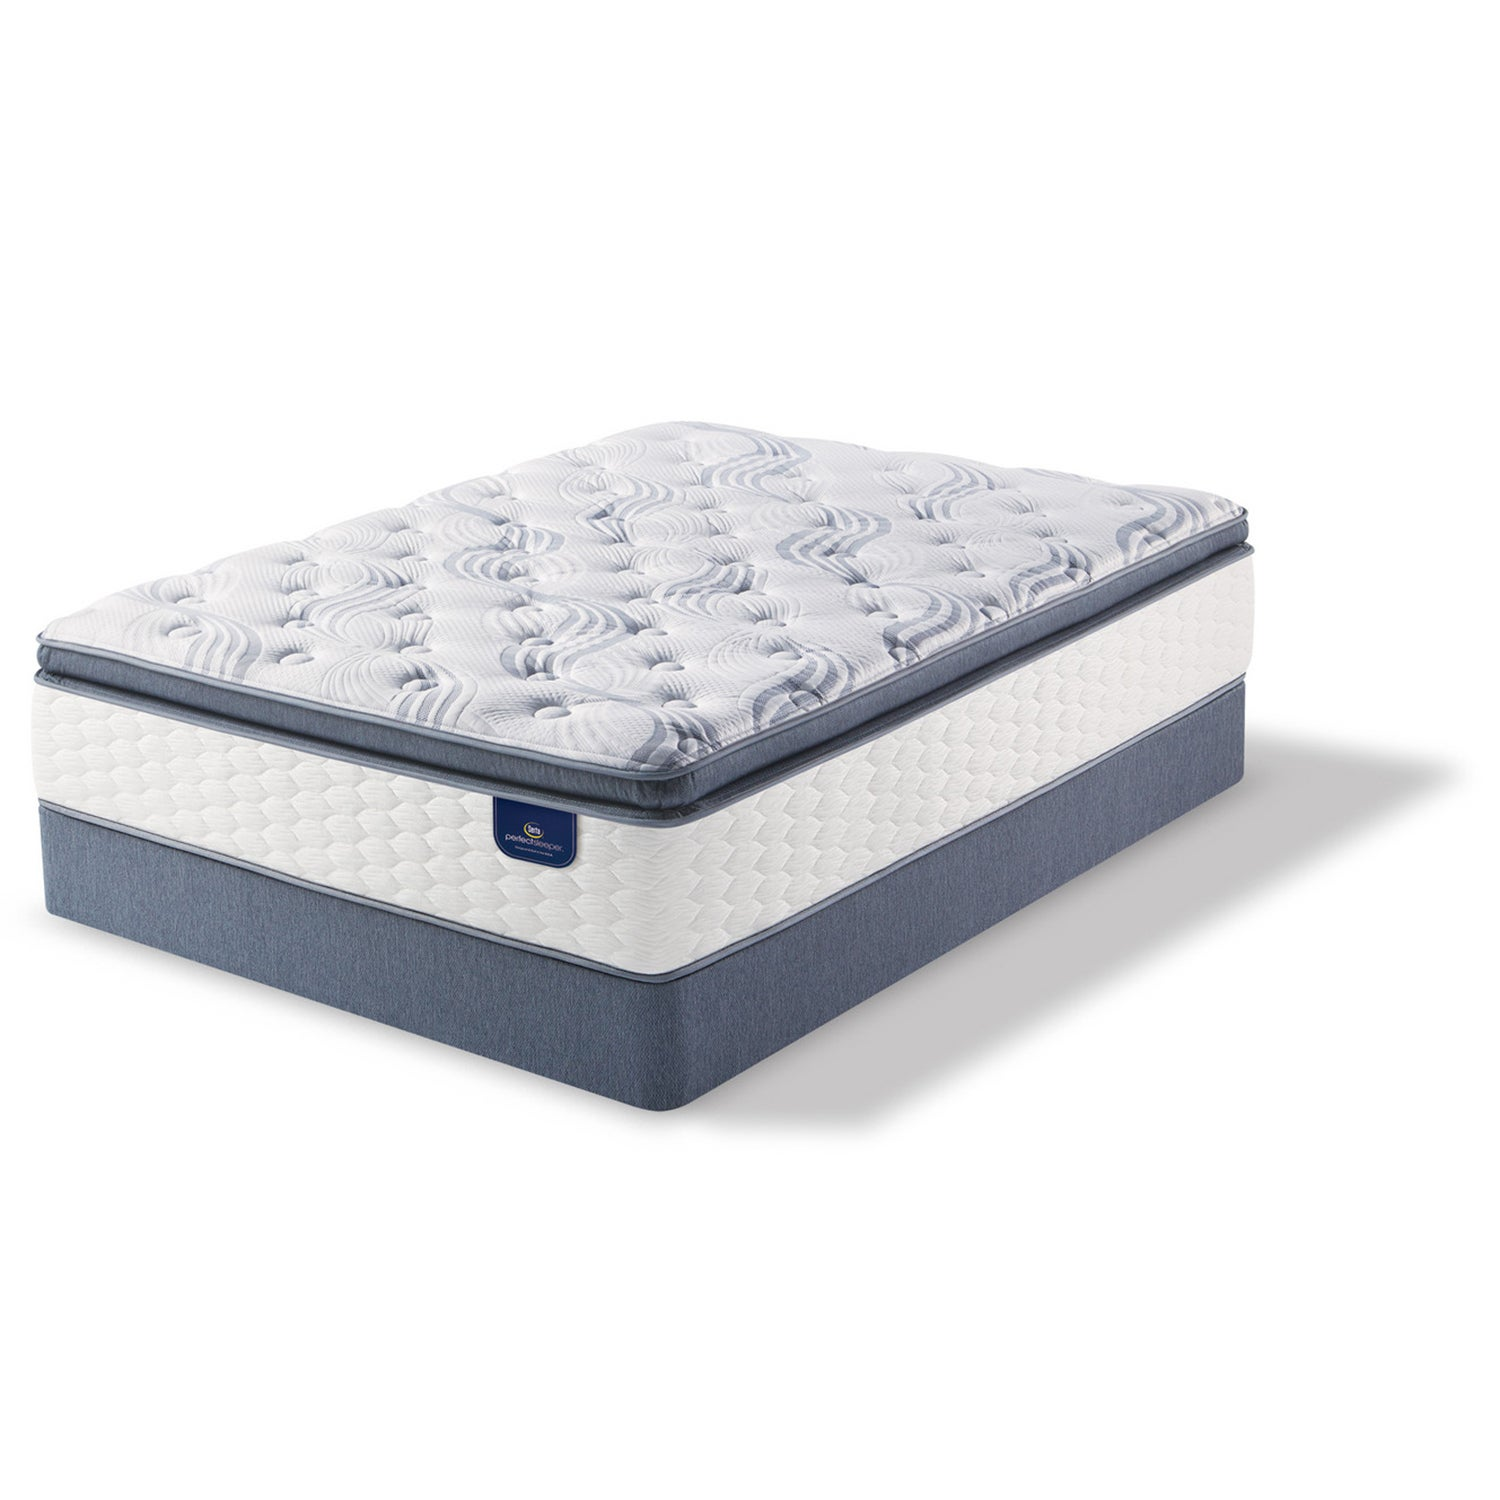 sueno pillow sultan pocket top mattress same topper spring luxury mattresses from